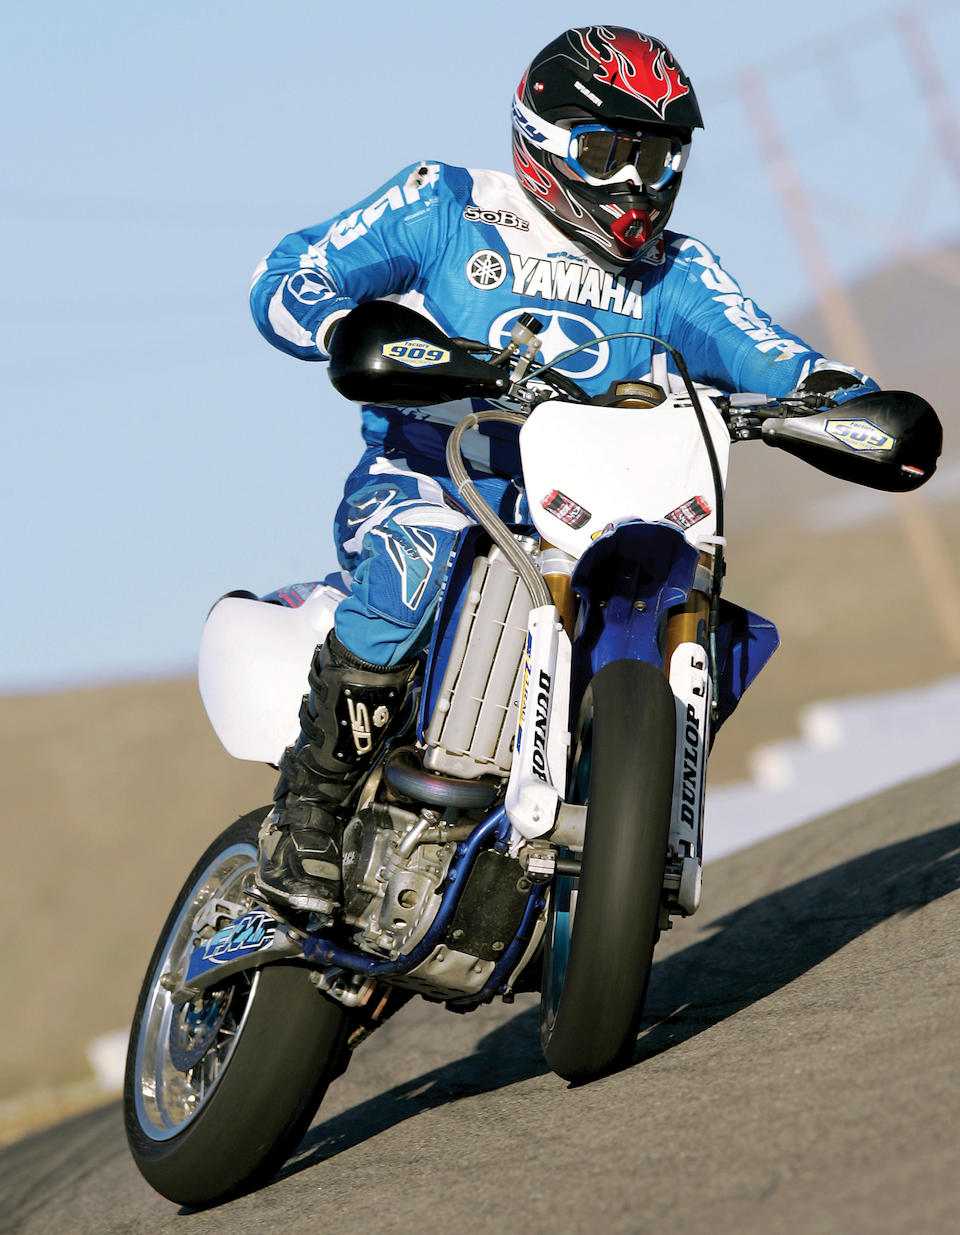 ex-Marty Moates, two-wheel-drive dirtbike owned by the USGP winner,2004 Yamaha WR450F 2-Trac  Chassis no. JYACJ04W000010 Engine no. 569